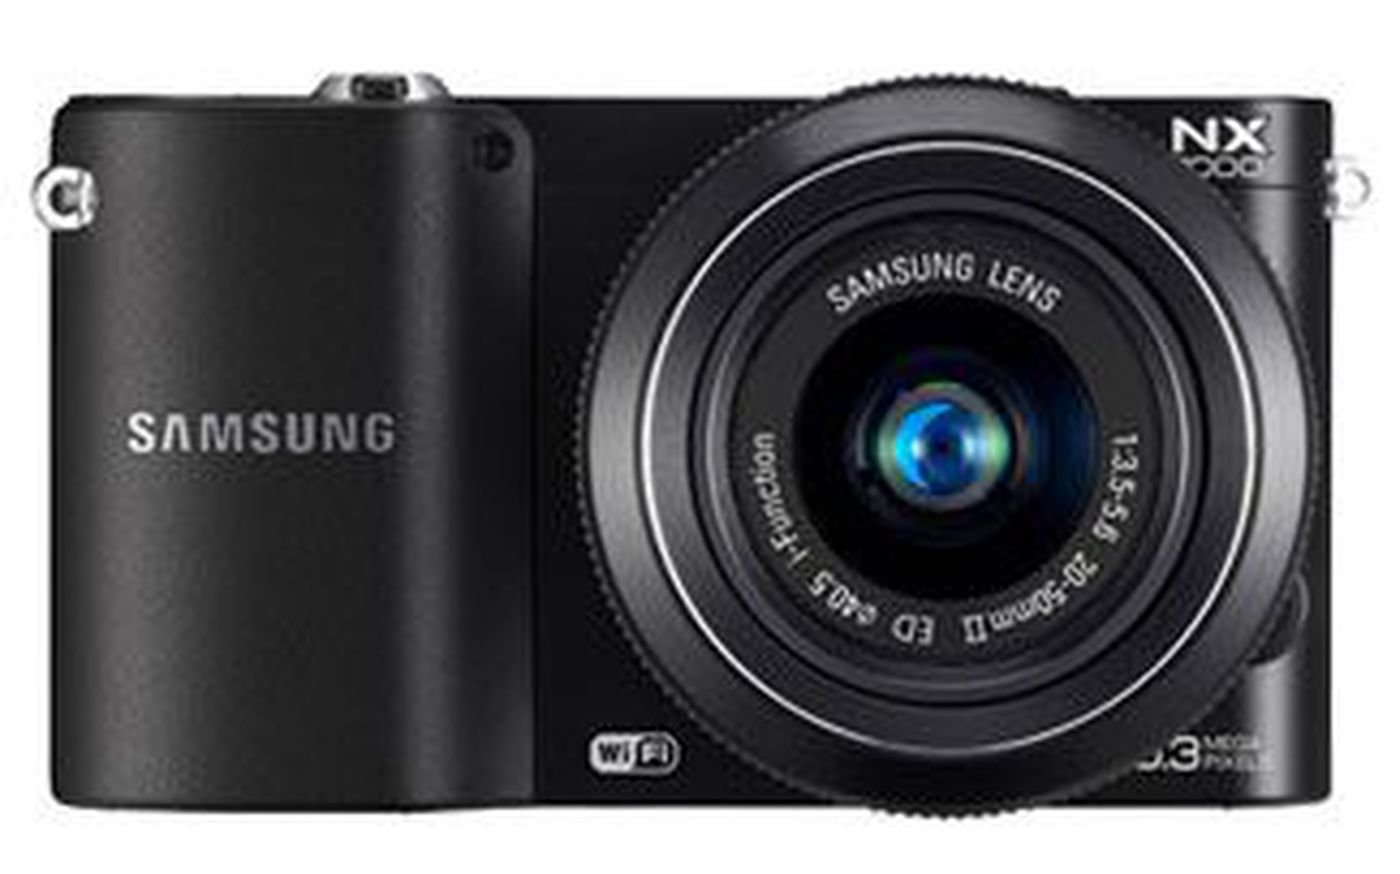 Holidays drive down digital camera prices